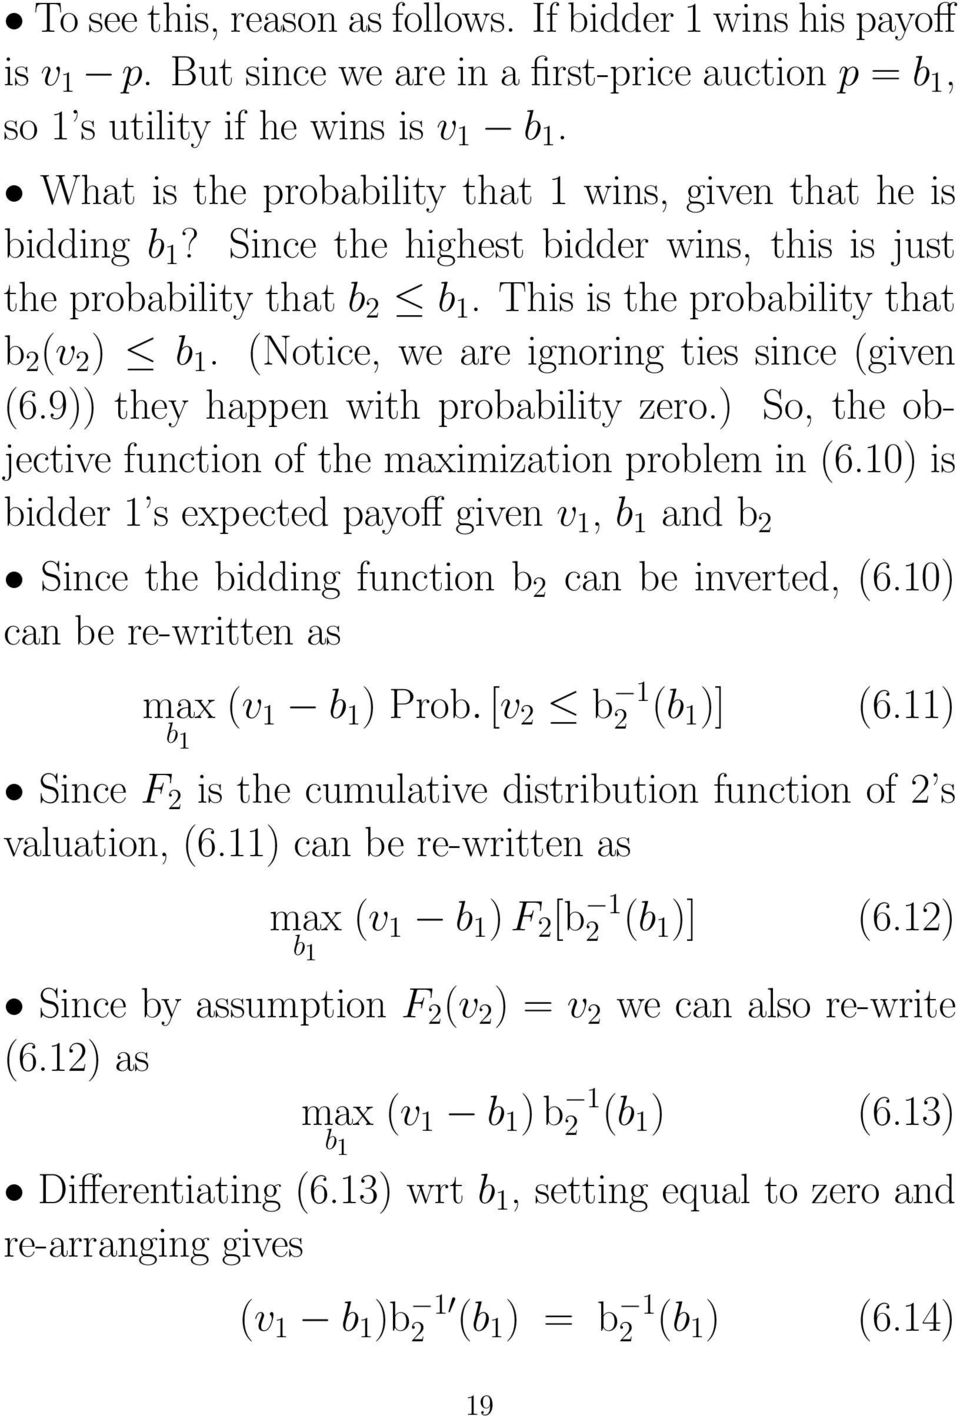 (Notice, we are ignoring ties since (given (6.9)) they happen with probability zero.) So, the objective function of the maximization problem in (6.